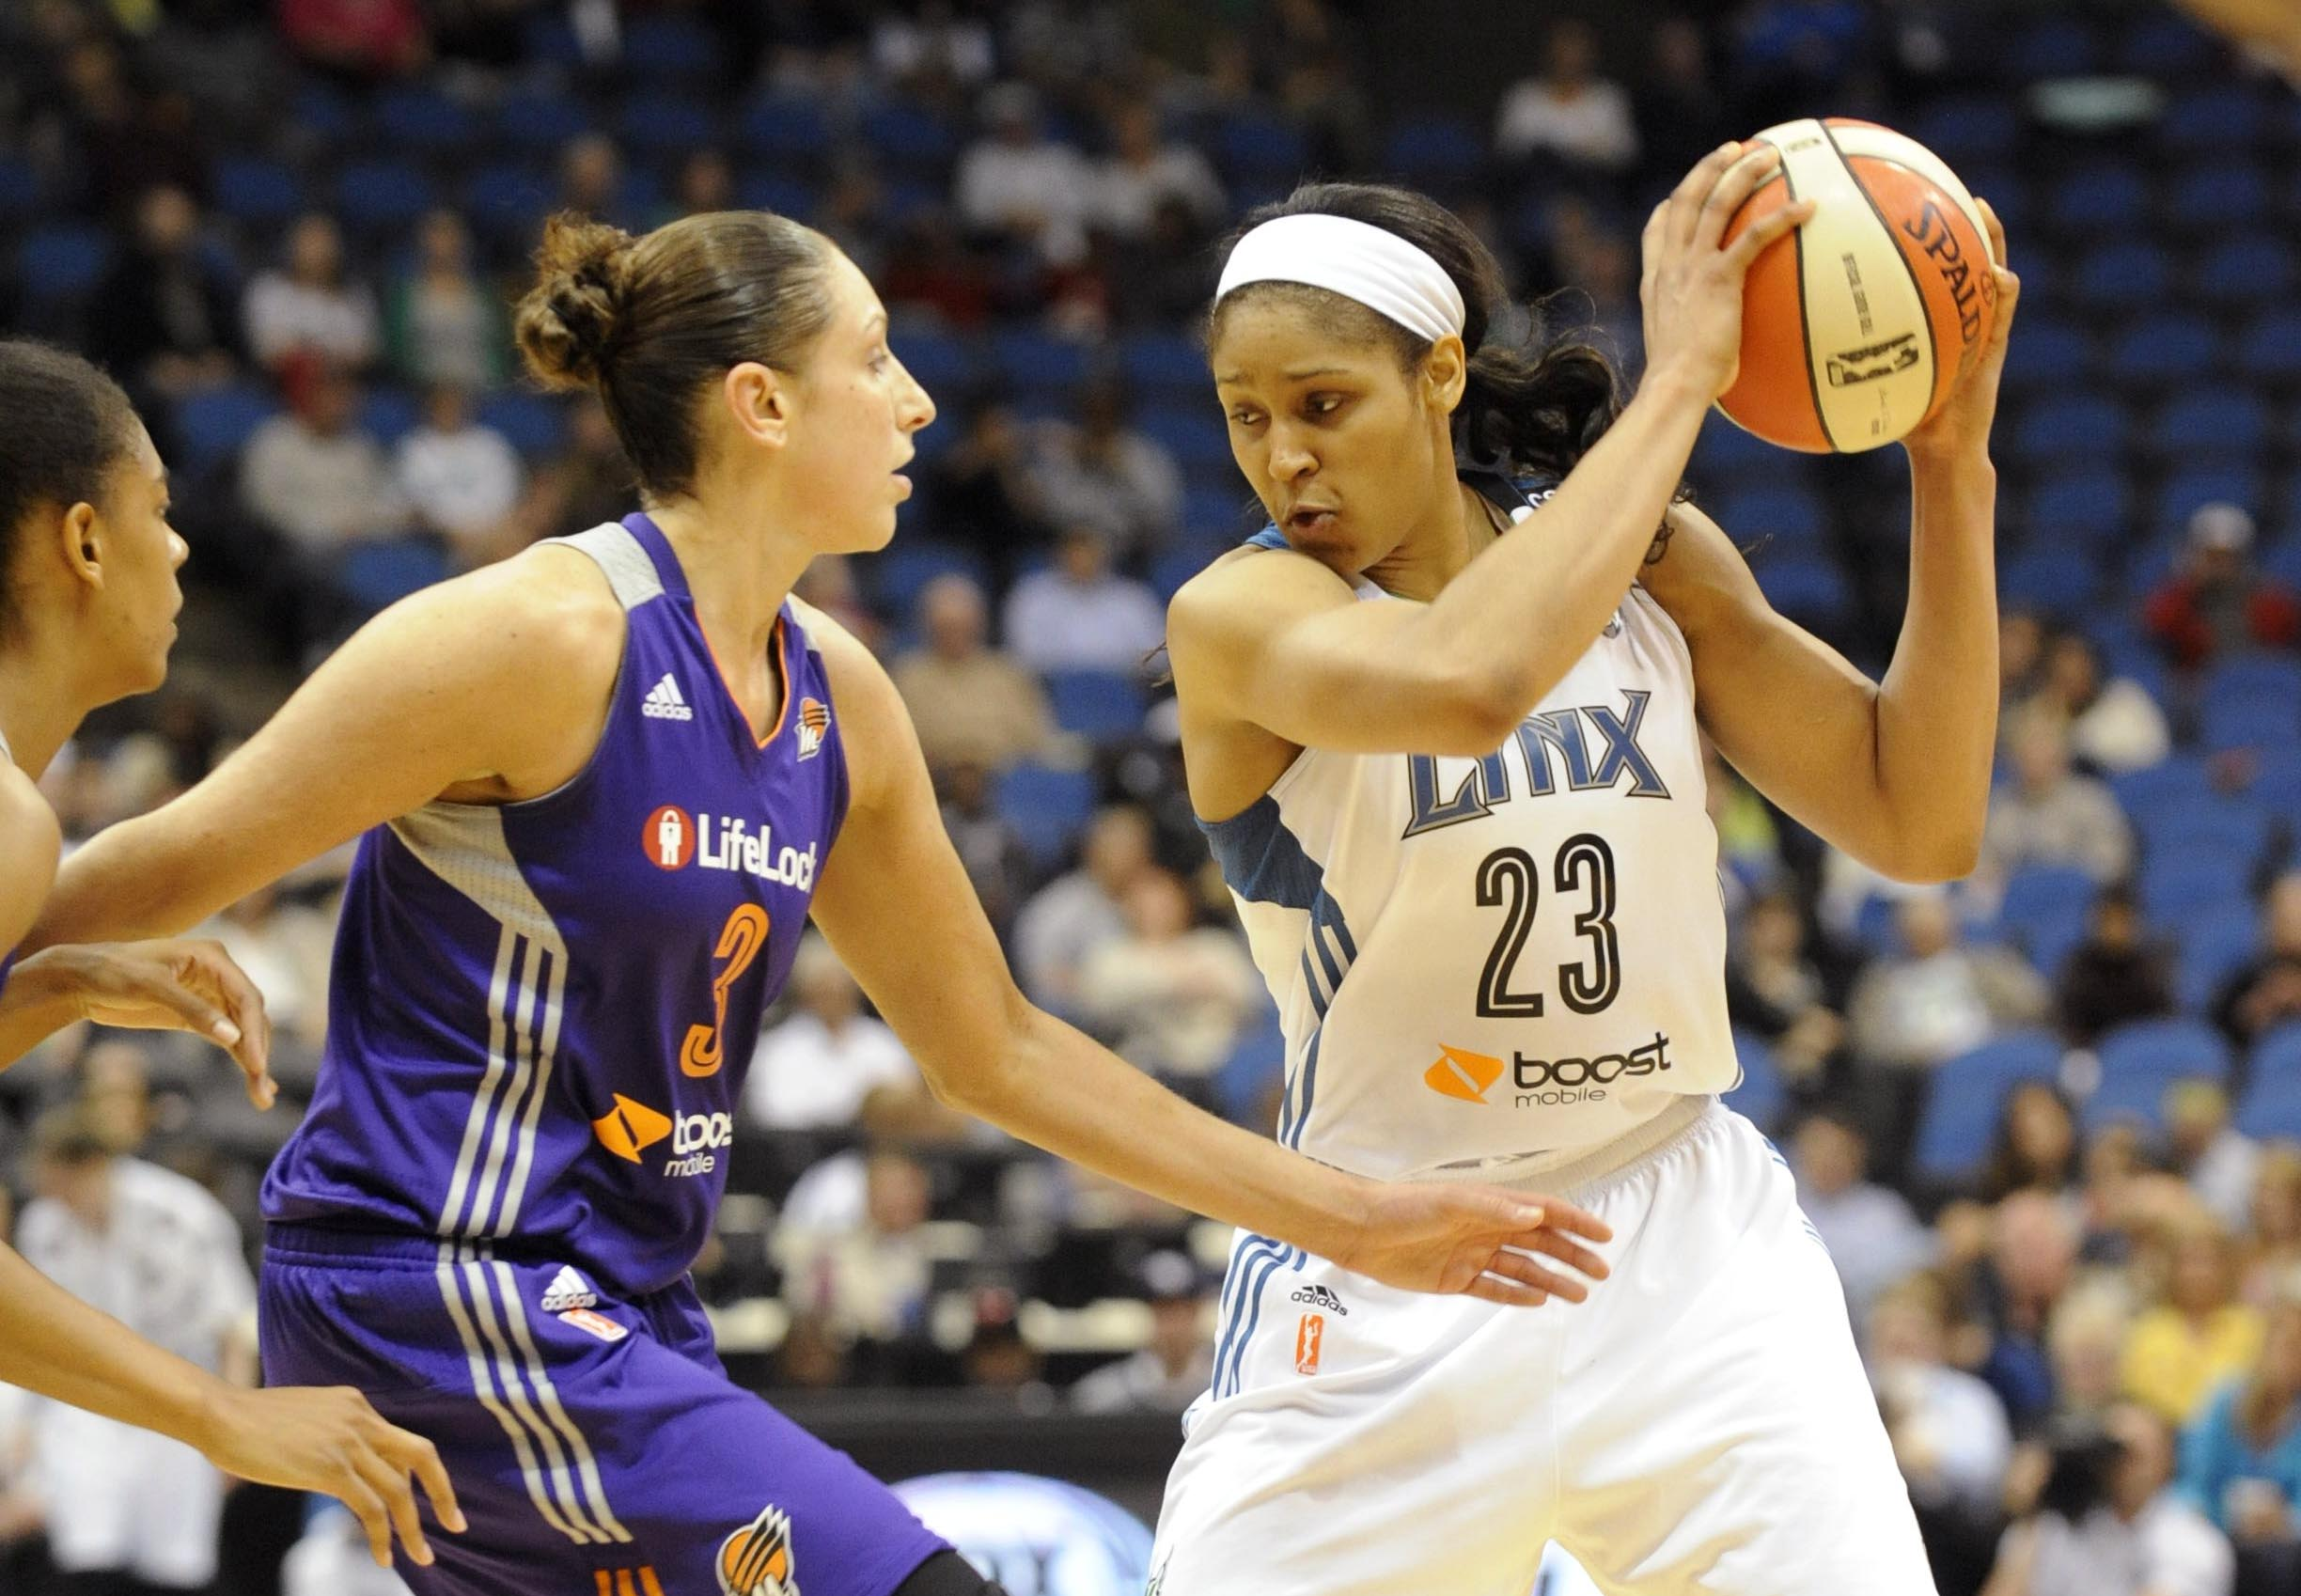 Maya Moore (right) has won two WNBA titles with the Minnesota Lynx (Marilyn Indahl, USA TODAY Sports)